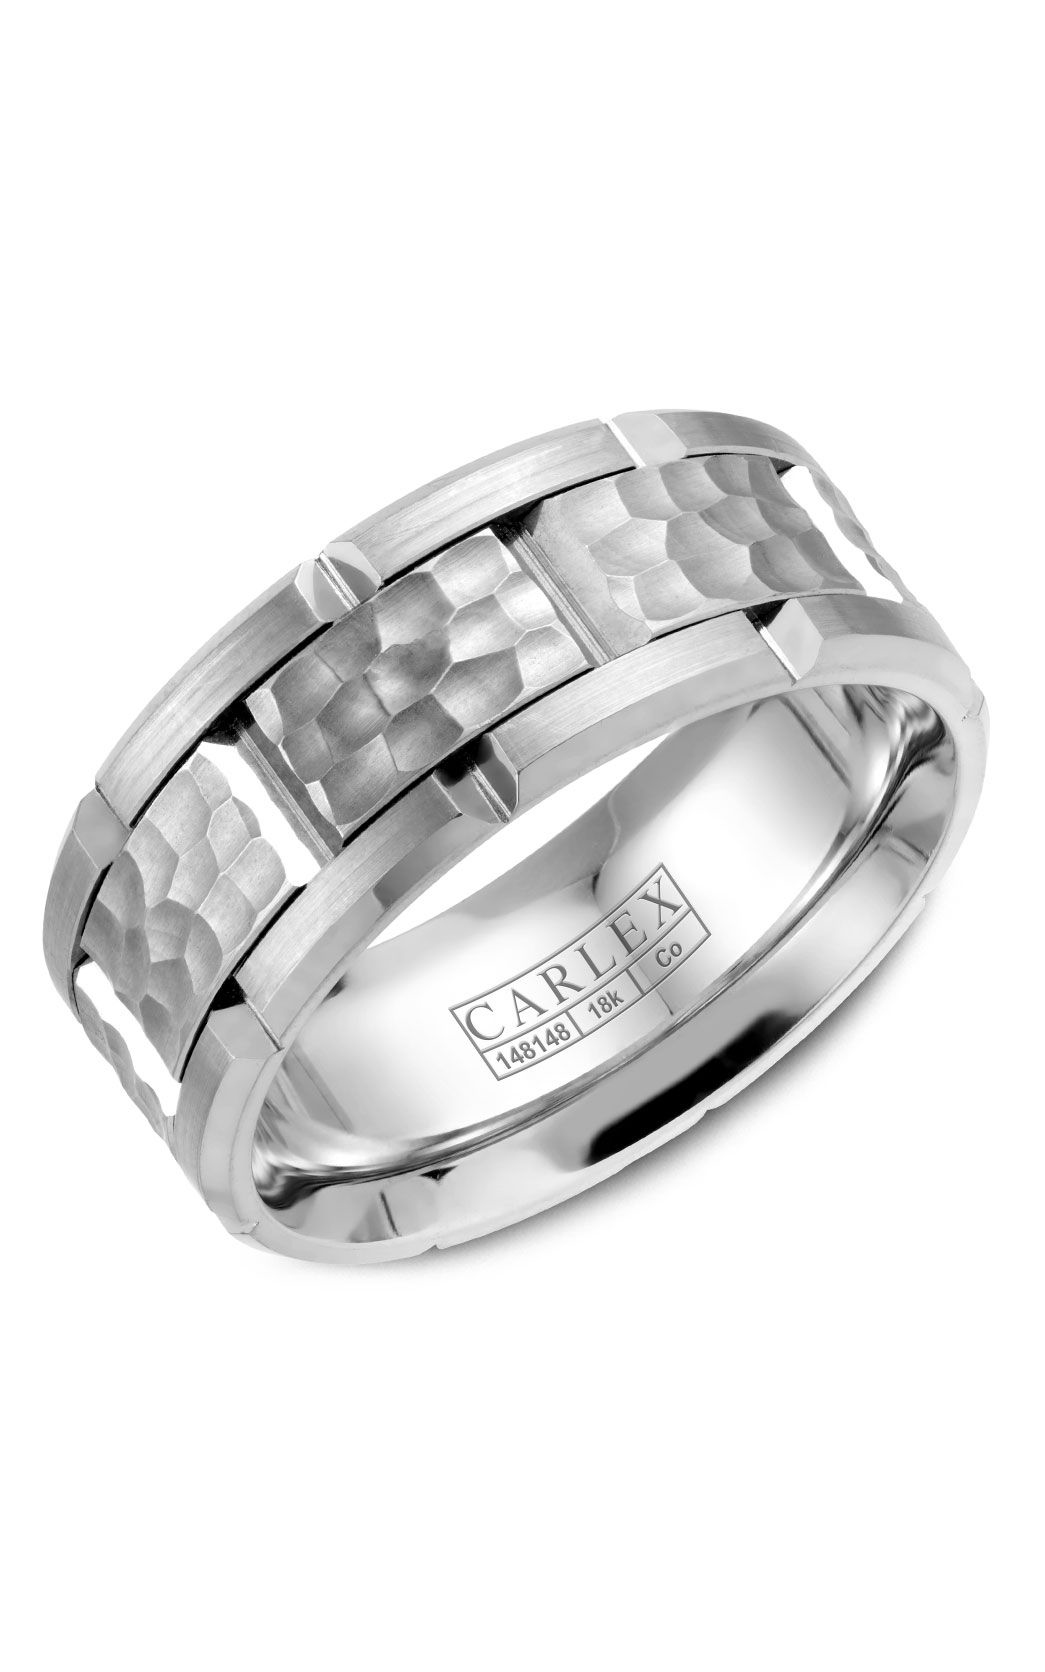 Carlex Sport Men's Wedding Band WB-9481WC product image